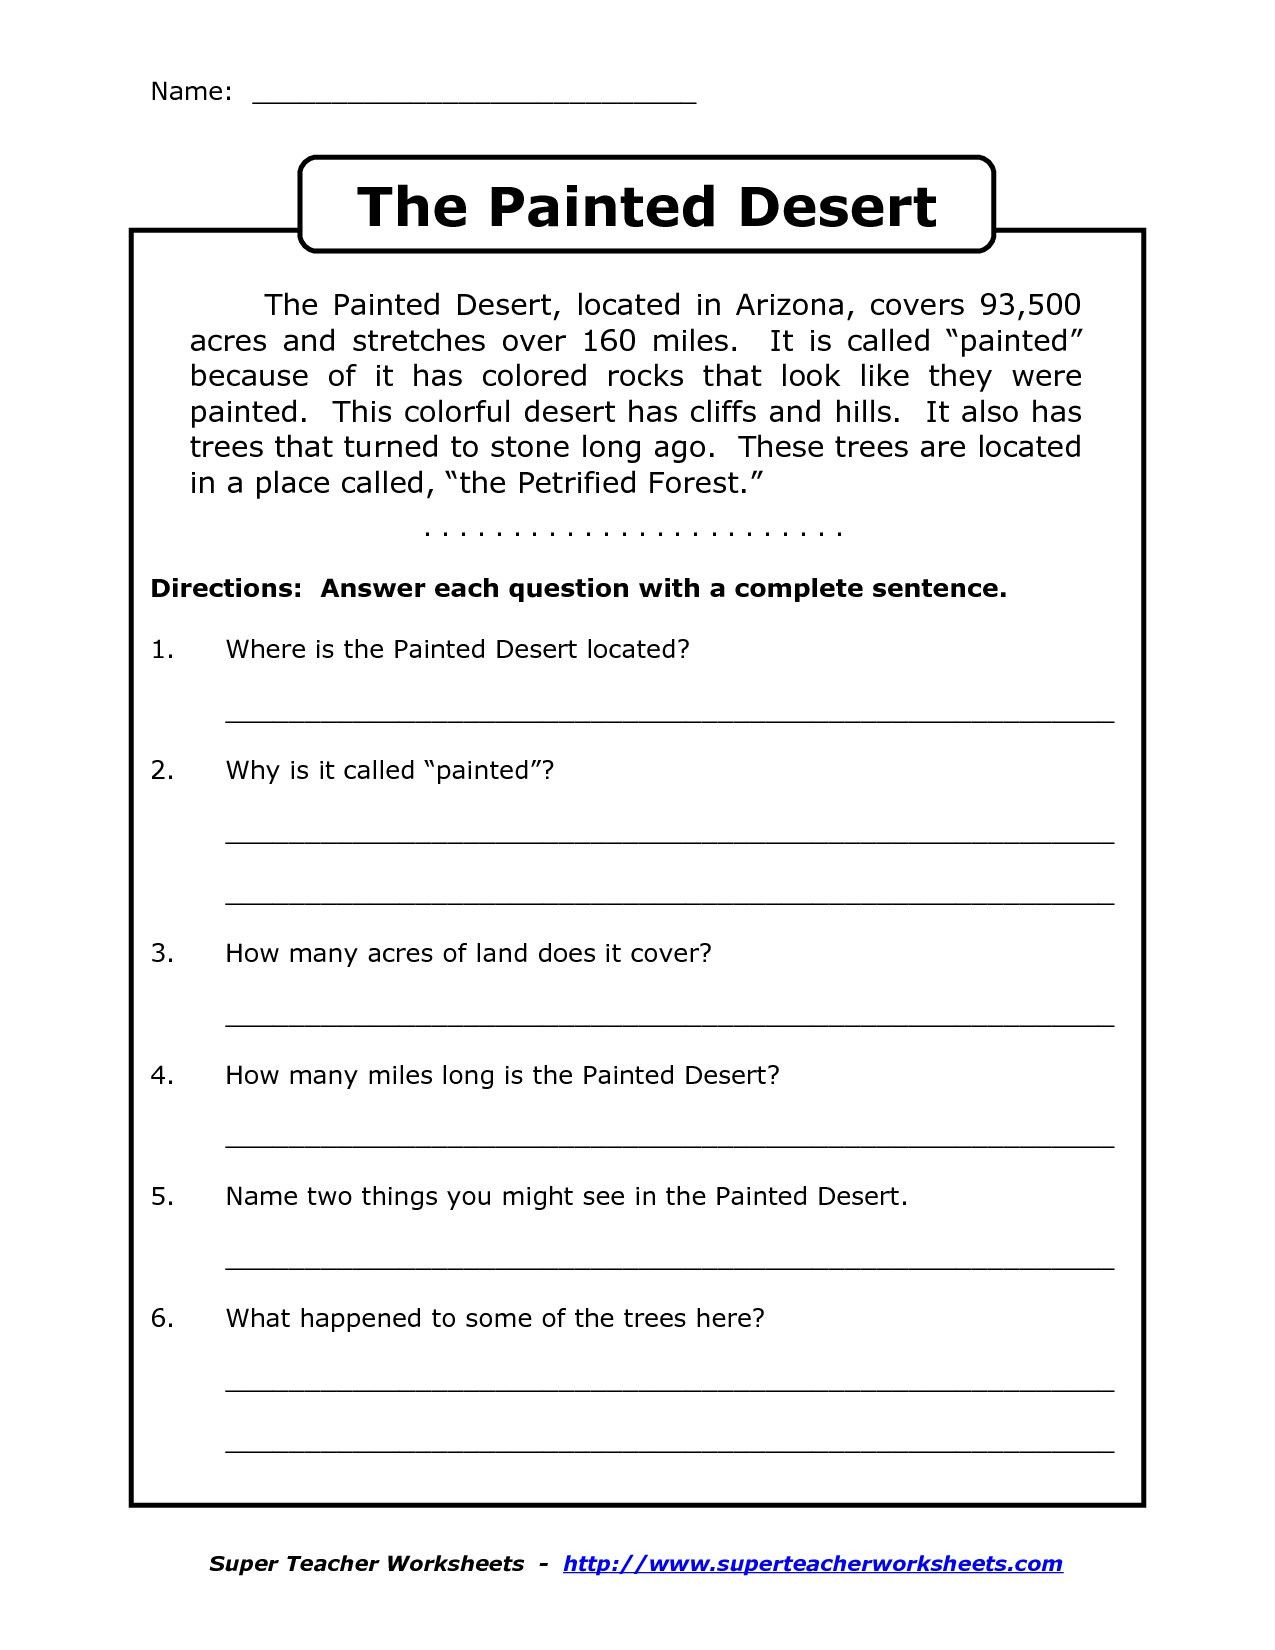 Cold War Reading Comprehension Worksheet Prehension Worksheet for 1st Grade Y2 P3 the Painted